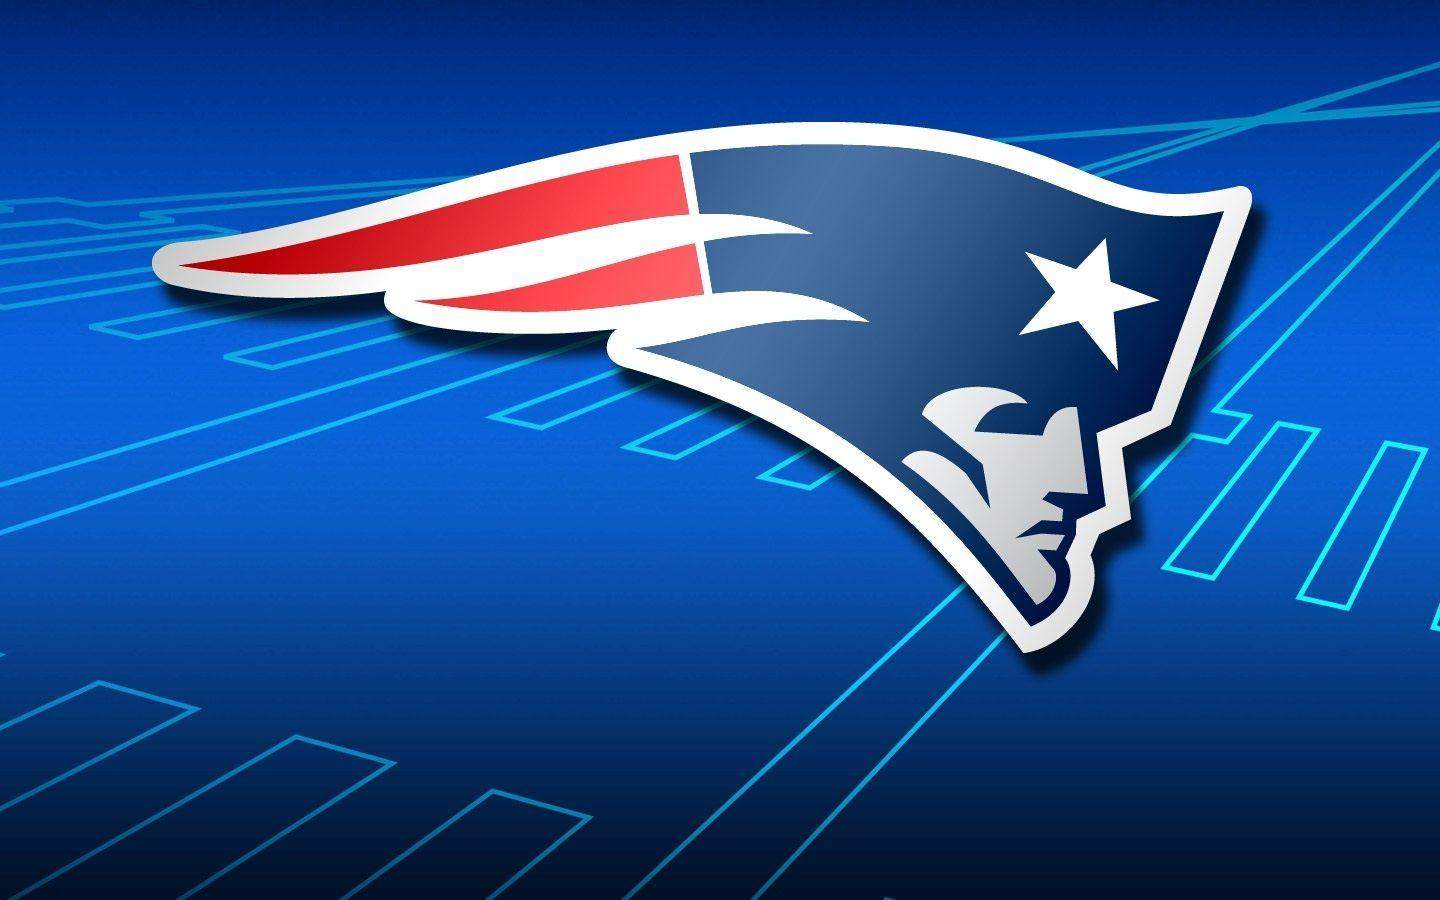 Sport Wallpaper New England Patriots: New England Patriots Wallpapers